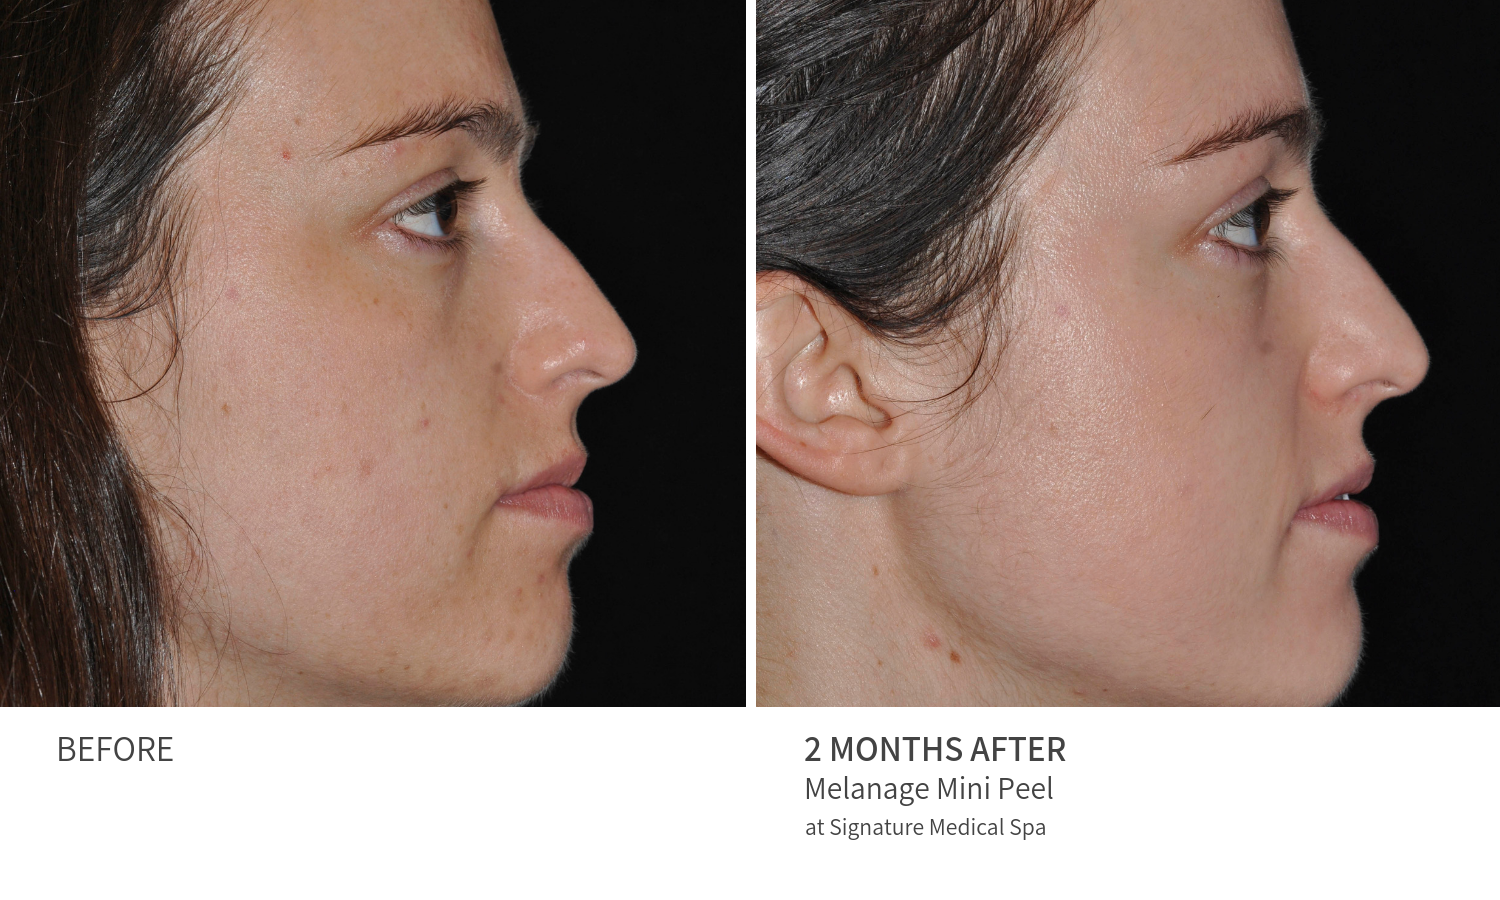 Before and After Melanage Mini Peel